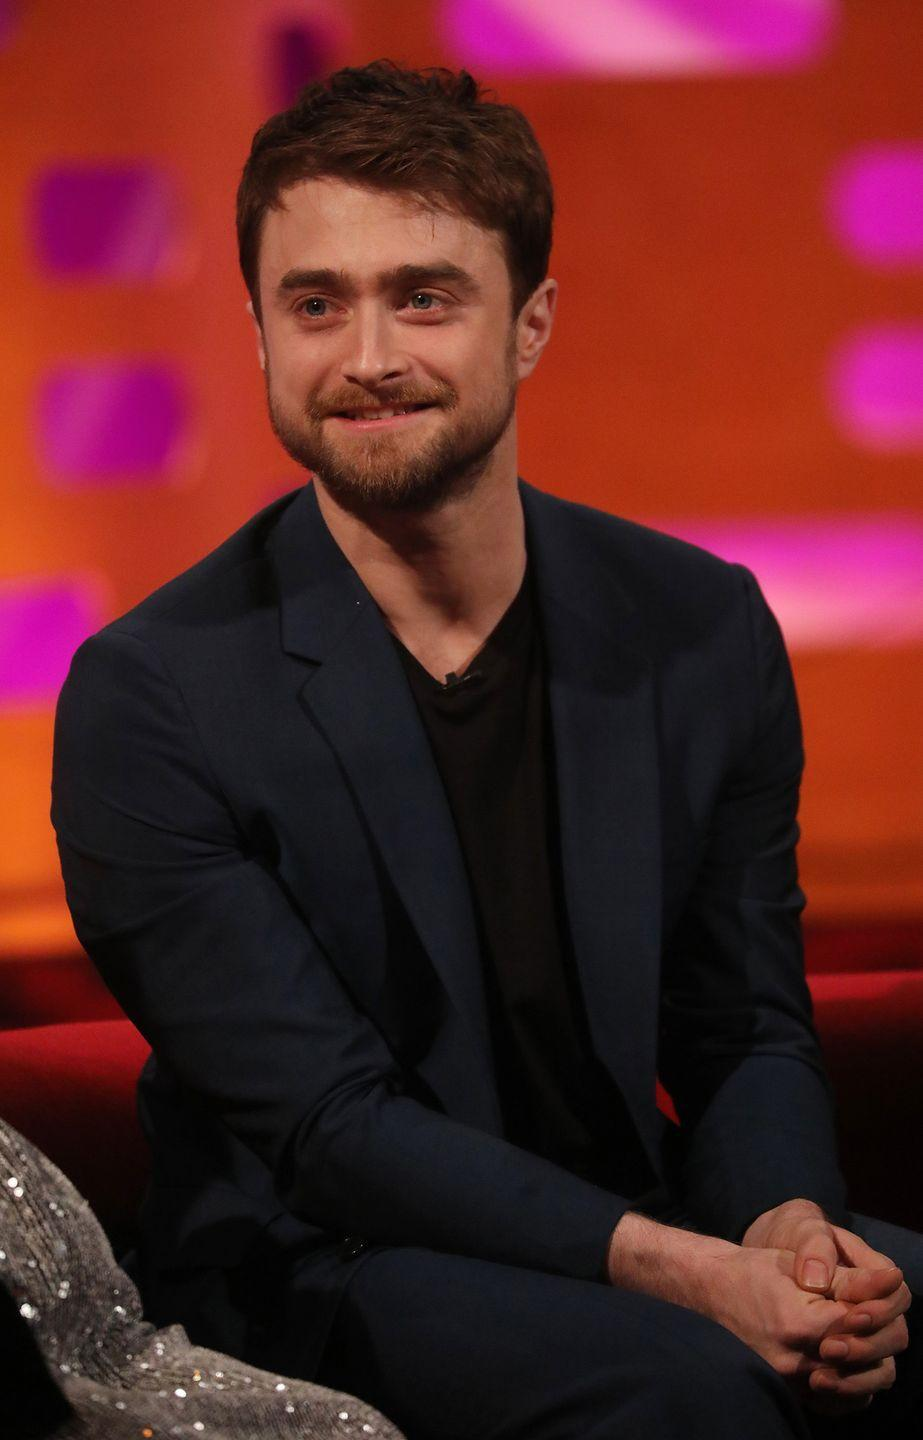 "<p><strong>Birthday: </strong>July 23</p><p><strong>Age: </strong>31</p><p>Radcliffe, aka <a href=""//www.oprahmag.com/entertainment/tv-movies/a32023702/how-to-stream-watch-harry-potter-movies/"" data-ylk=""slk:The Boy Who Lived"" class=""link rapid-noclick-resp"">The Boy Who Lived</a>, recently re-visited the Harry Potter franchise with a <a href=""//www.oprahmag.com/entertainment/books/a32376940/danielle-radcliffe-reads-harry-potter-at-home/"" data-ylk=""slk:surprise narration of the first book"" class=""link rapid-noclick-resp"">surprise narration of the first book</a> in the series, <em>The Sorcerer's Stone</em>. And as if we needed another reason to love him, he also spoke out against author <a href=""//www.oprahmag.com/entertainment/books/a32816845/amanda-jette-knox-jk-rowling-transphobia-response/"" data-ylk=""slk:J.K. Rowling's transphobic tweets"" class=""link rapid-noclick-resp"">J.K. Rowling's transphobic tweets</a>, <a href=""//www.oprahmag.com/entertainment/books/a32800084/jk-rowling-trans-phobic-comments/"" data-ylk=""slk:vocalizing support for the community."" class=""link rapid-noclick-resp"">vocalizing support for the community.</a> <br></p>"